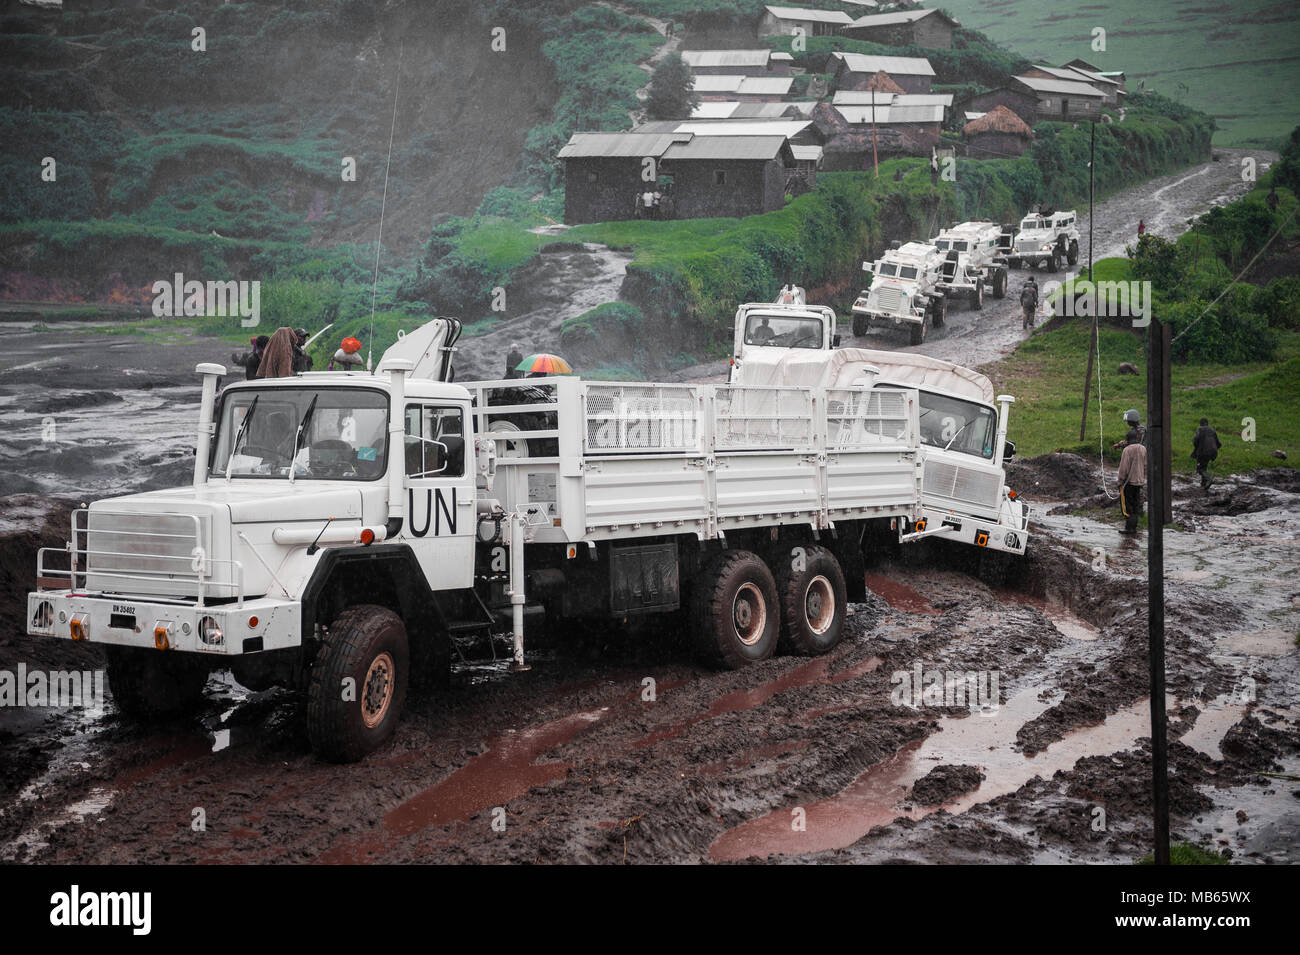 A convoy of South African UN peacekeepers struggle through the DRC roads enroute to Masisi. A truck attempts to tow another vehicle stuck in the mud - Stock Image